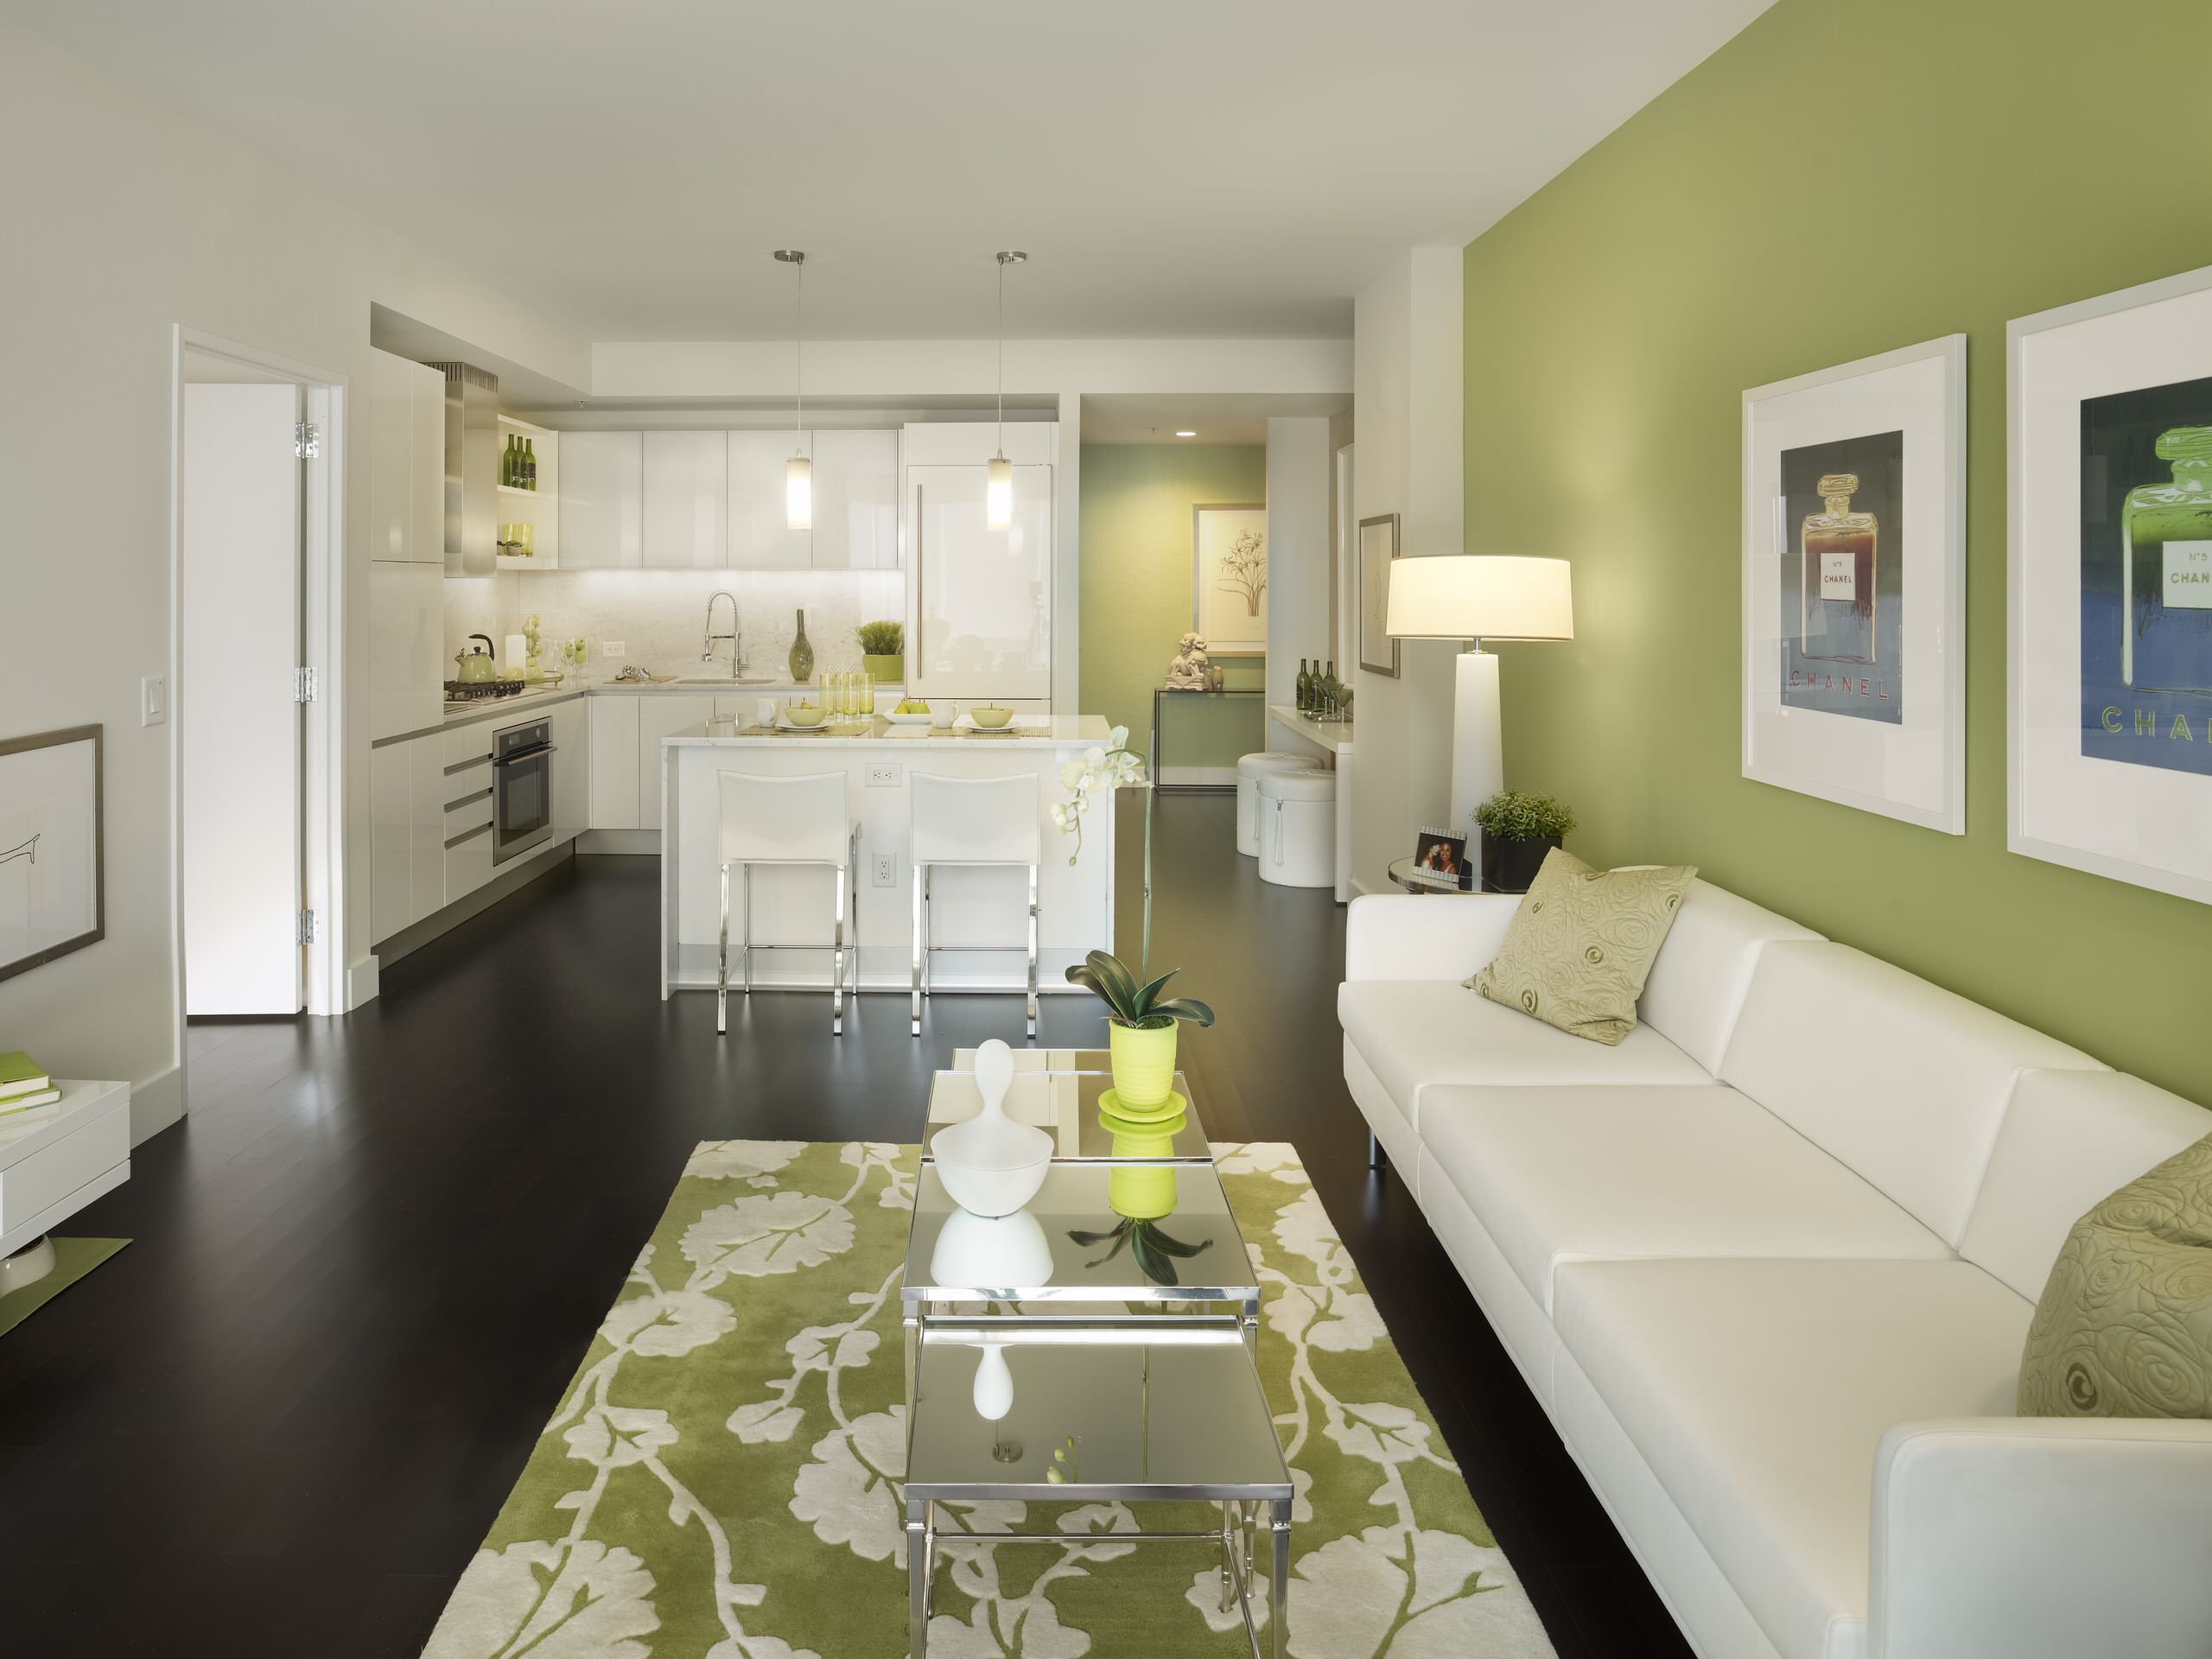 75 Beautiful Dark Wood Floor Living Room With Green Walls Pictures Ideas February 2021 Houzz